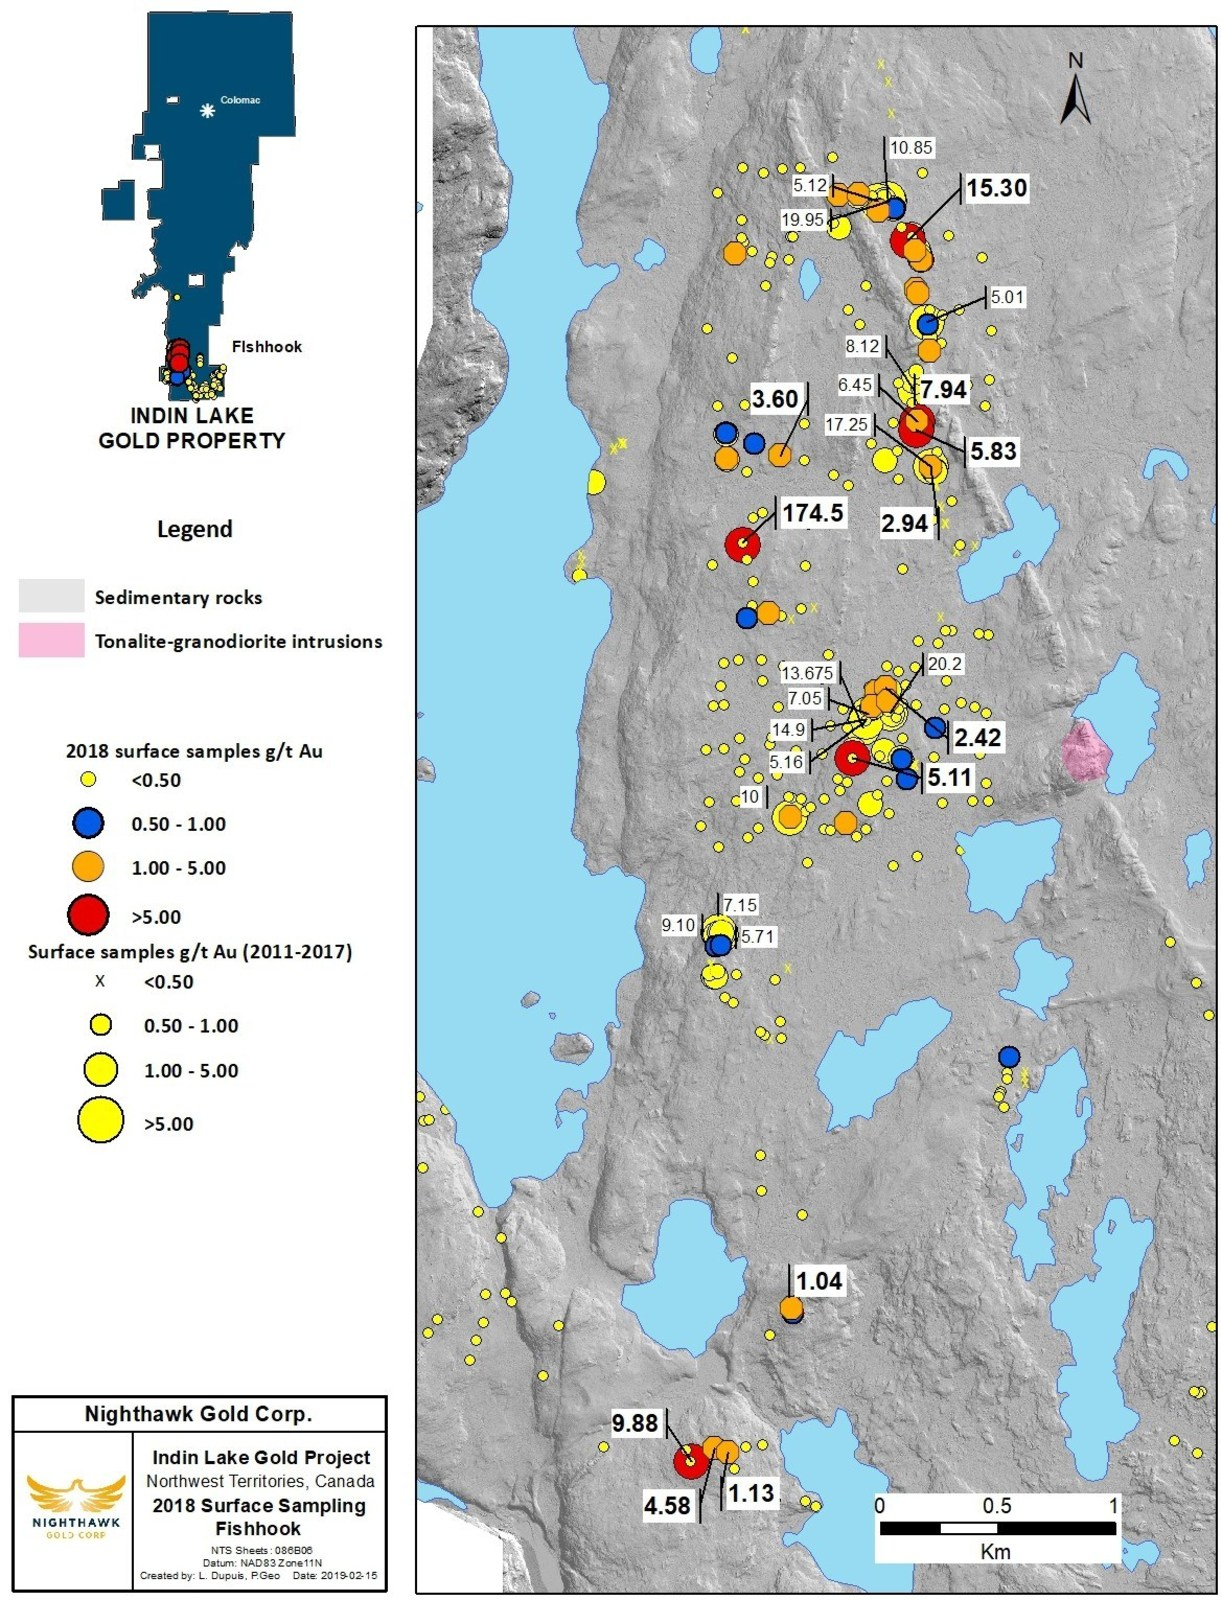 Figure 8. Fishhook Location Map and Select Surface Sample Results